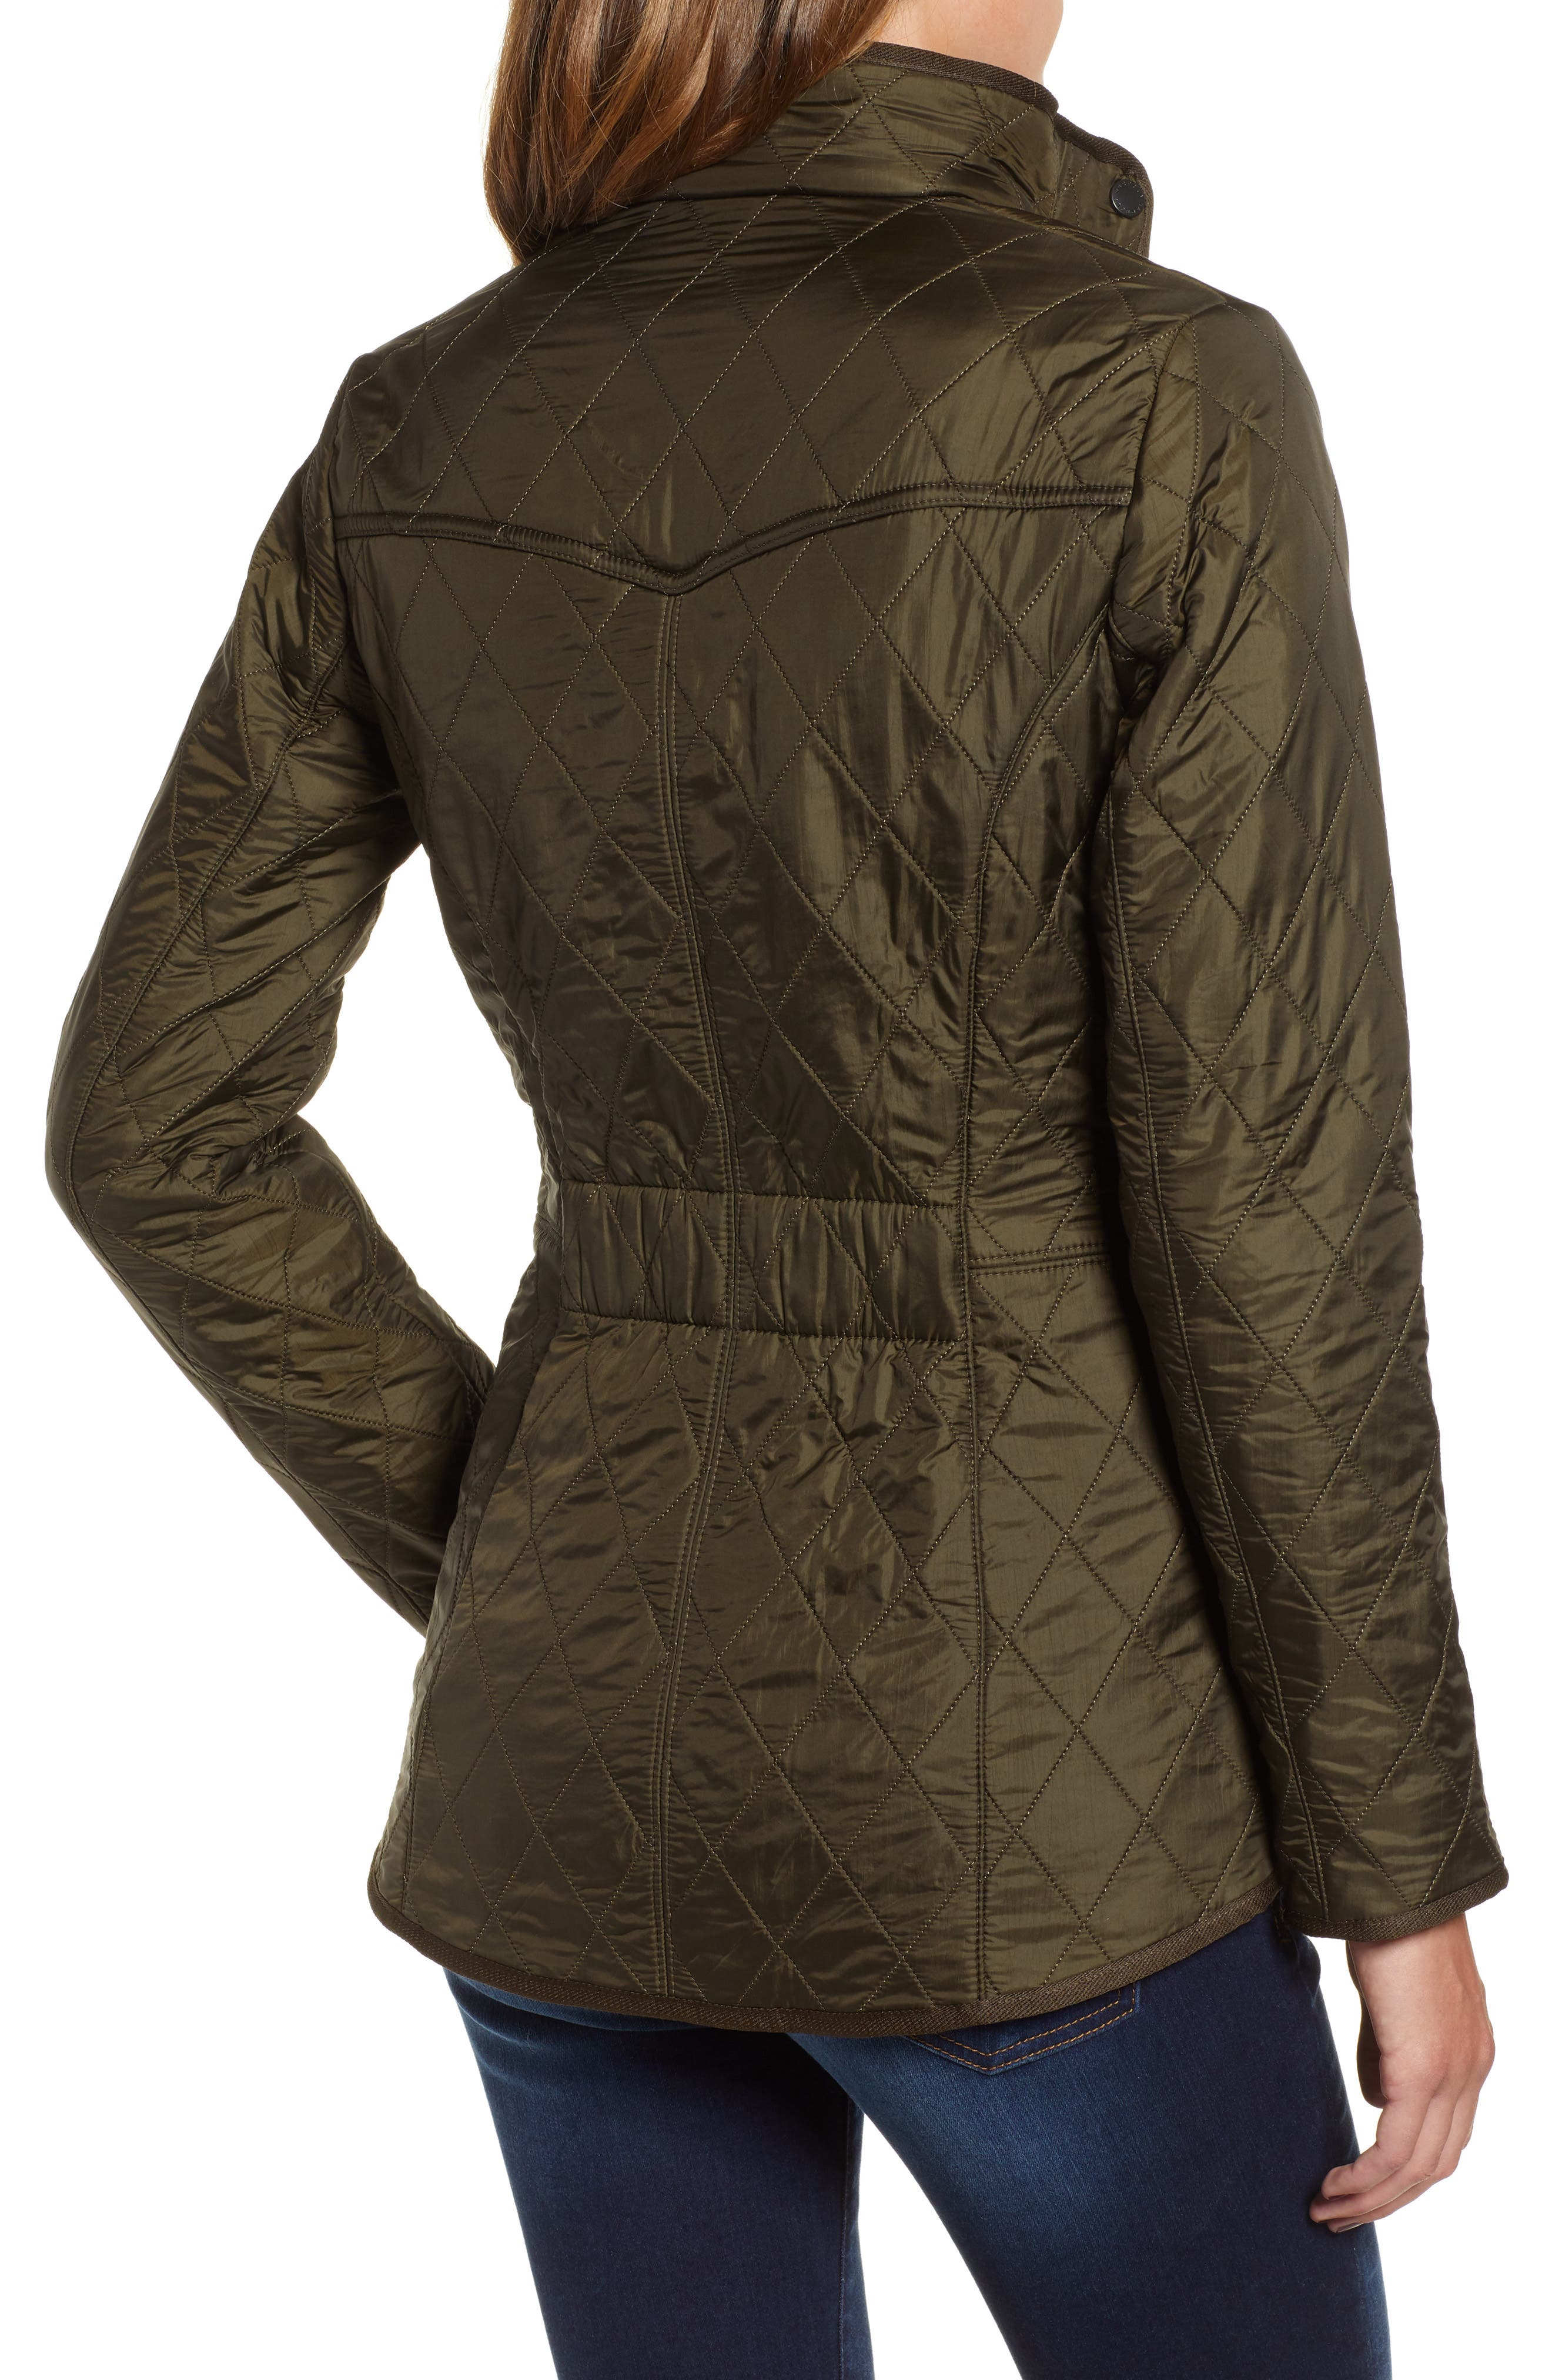 BARBOUR, 'Cavalry' Quilted Jacket, Alternate thumbnail 2, color, DARK OLIVE/ OLIVE